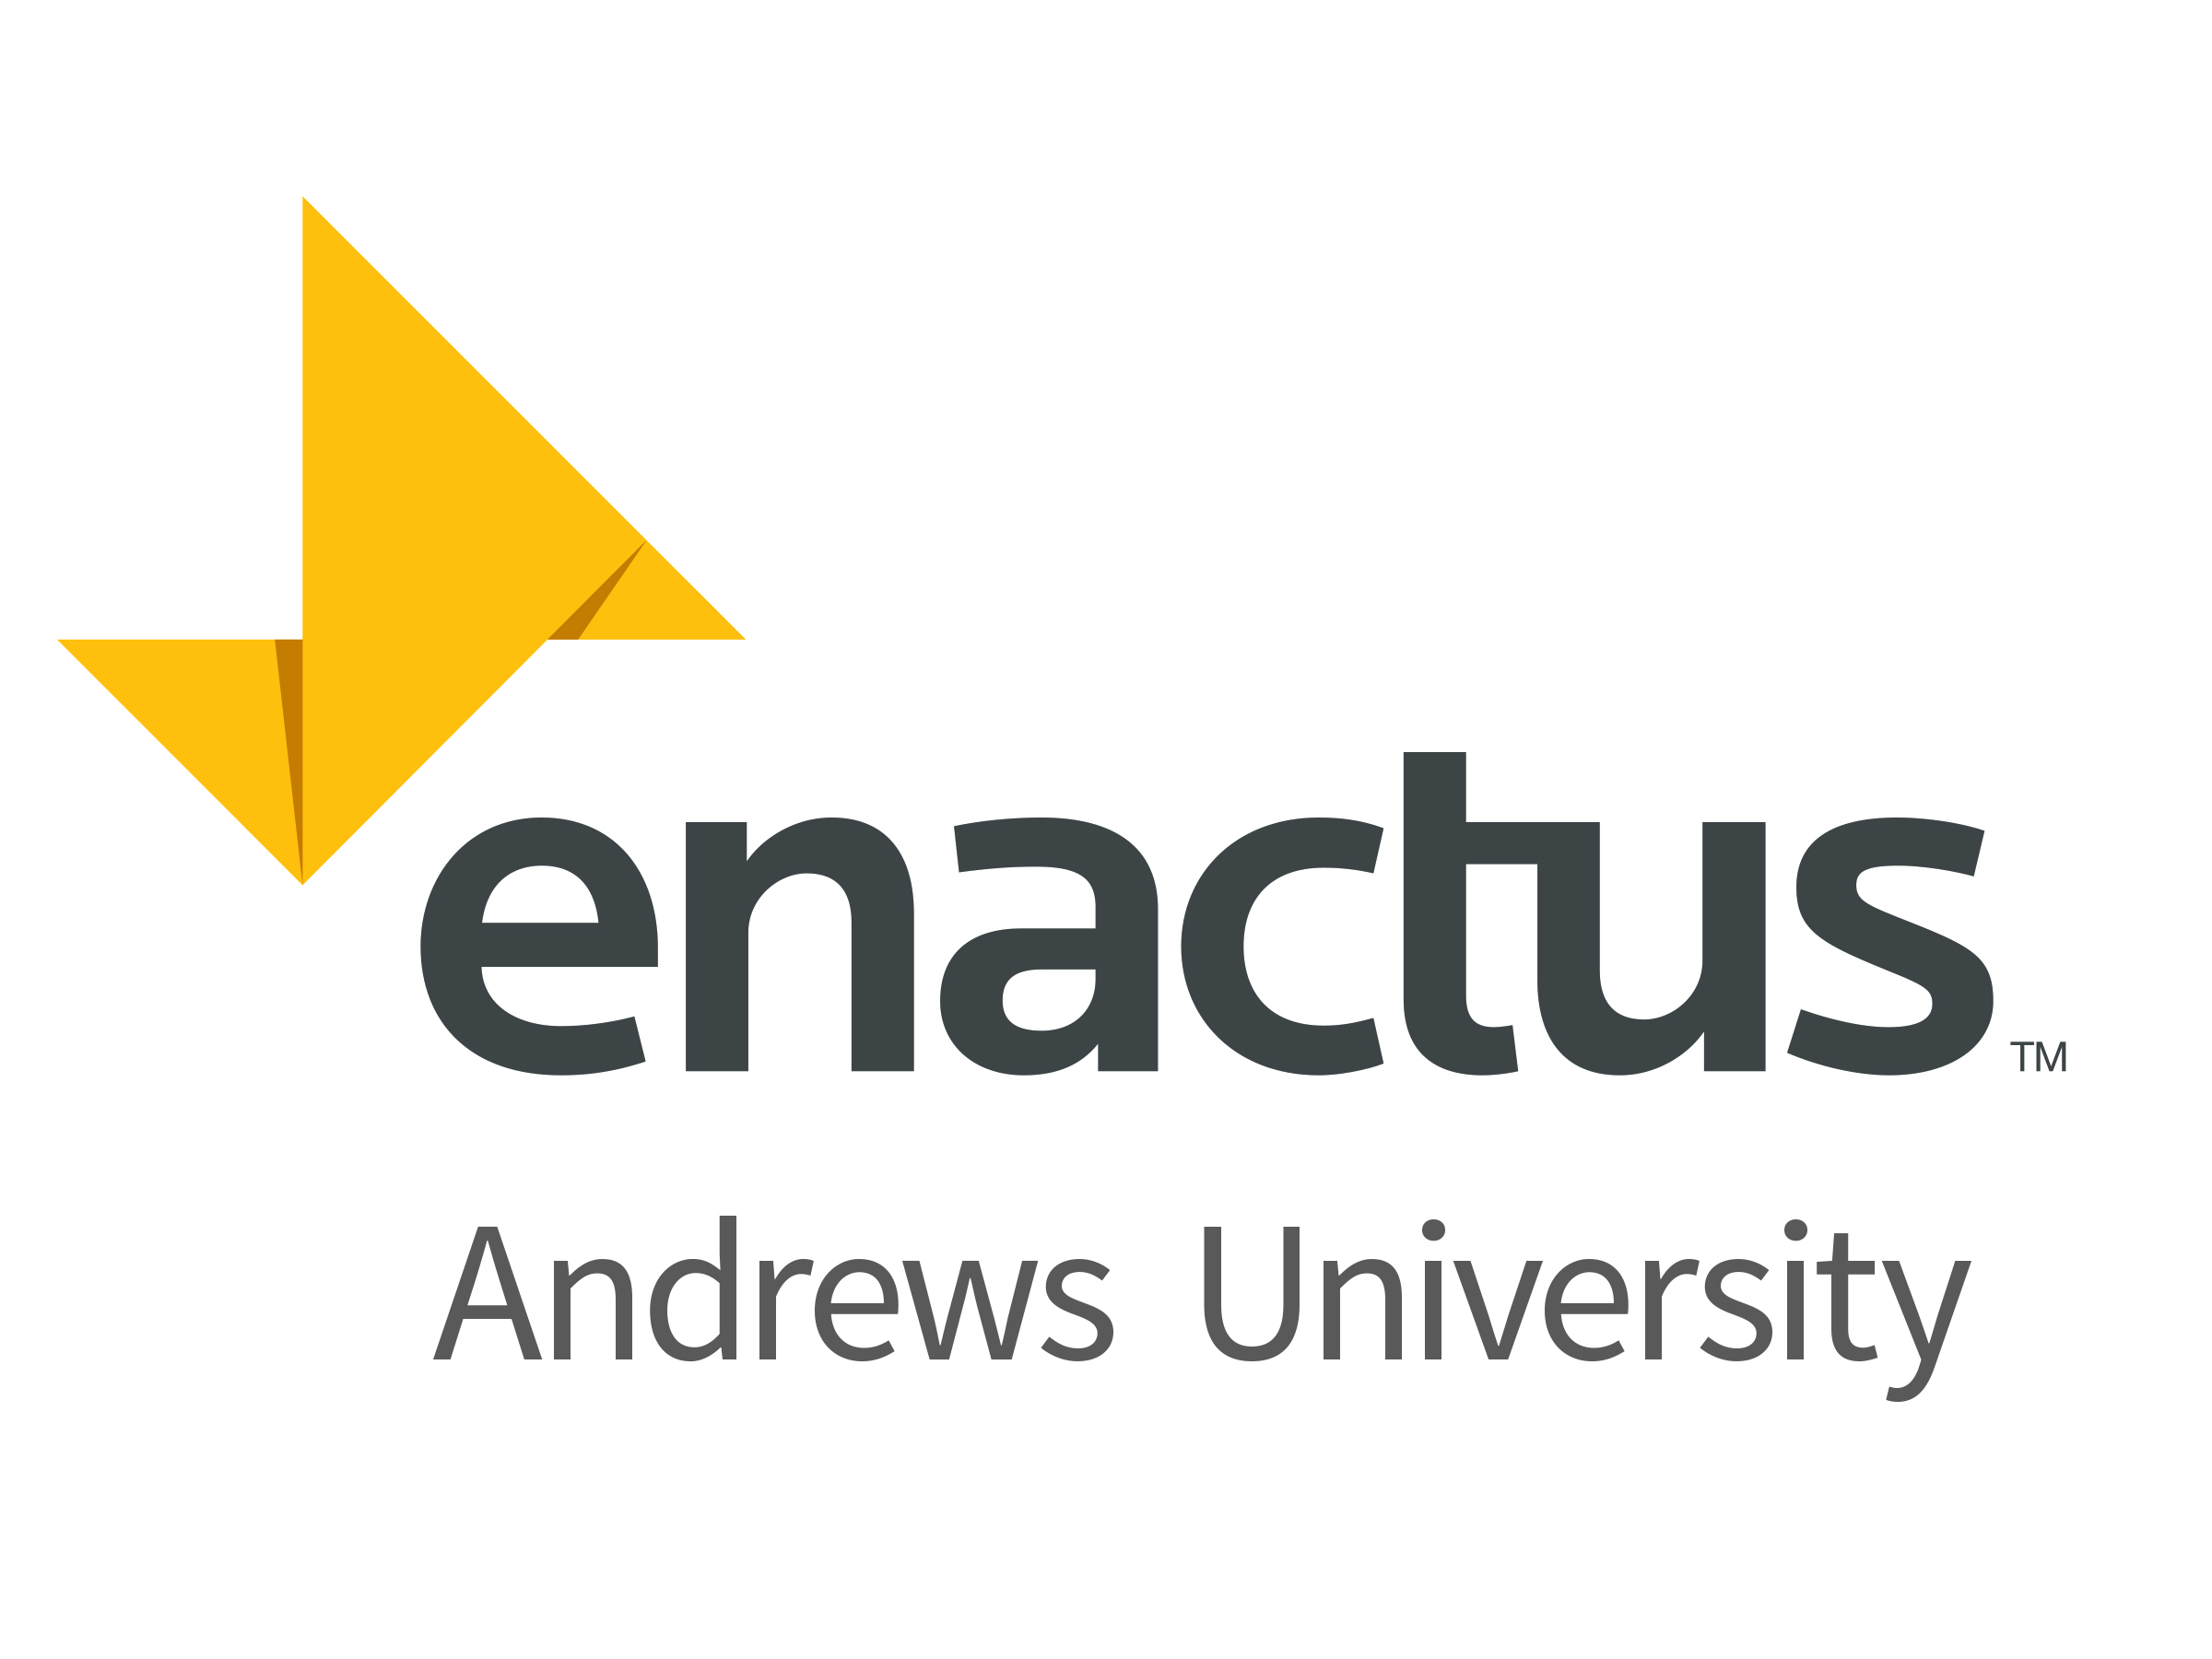 Enactus: Andrews University